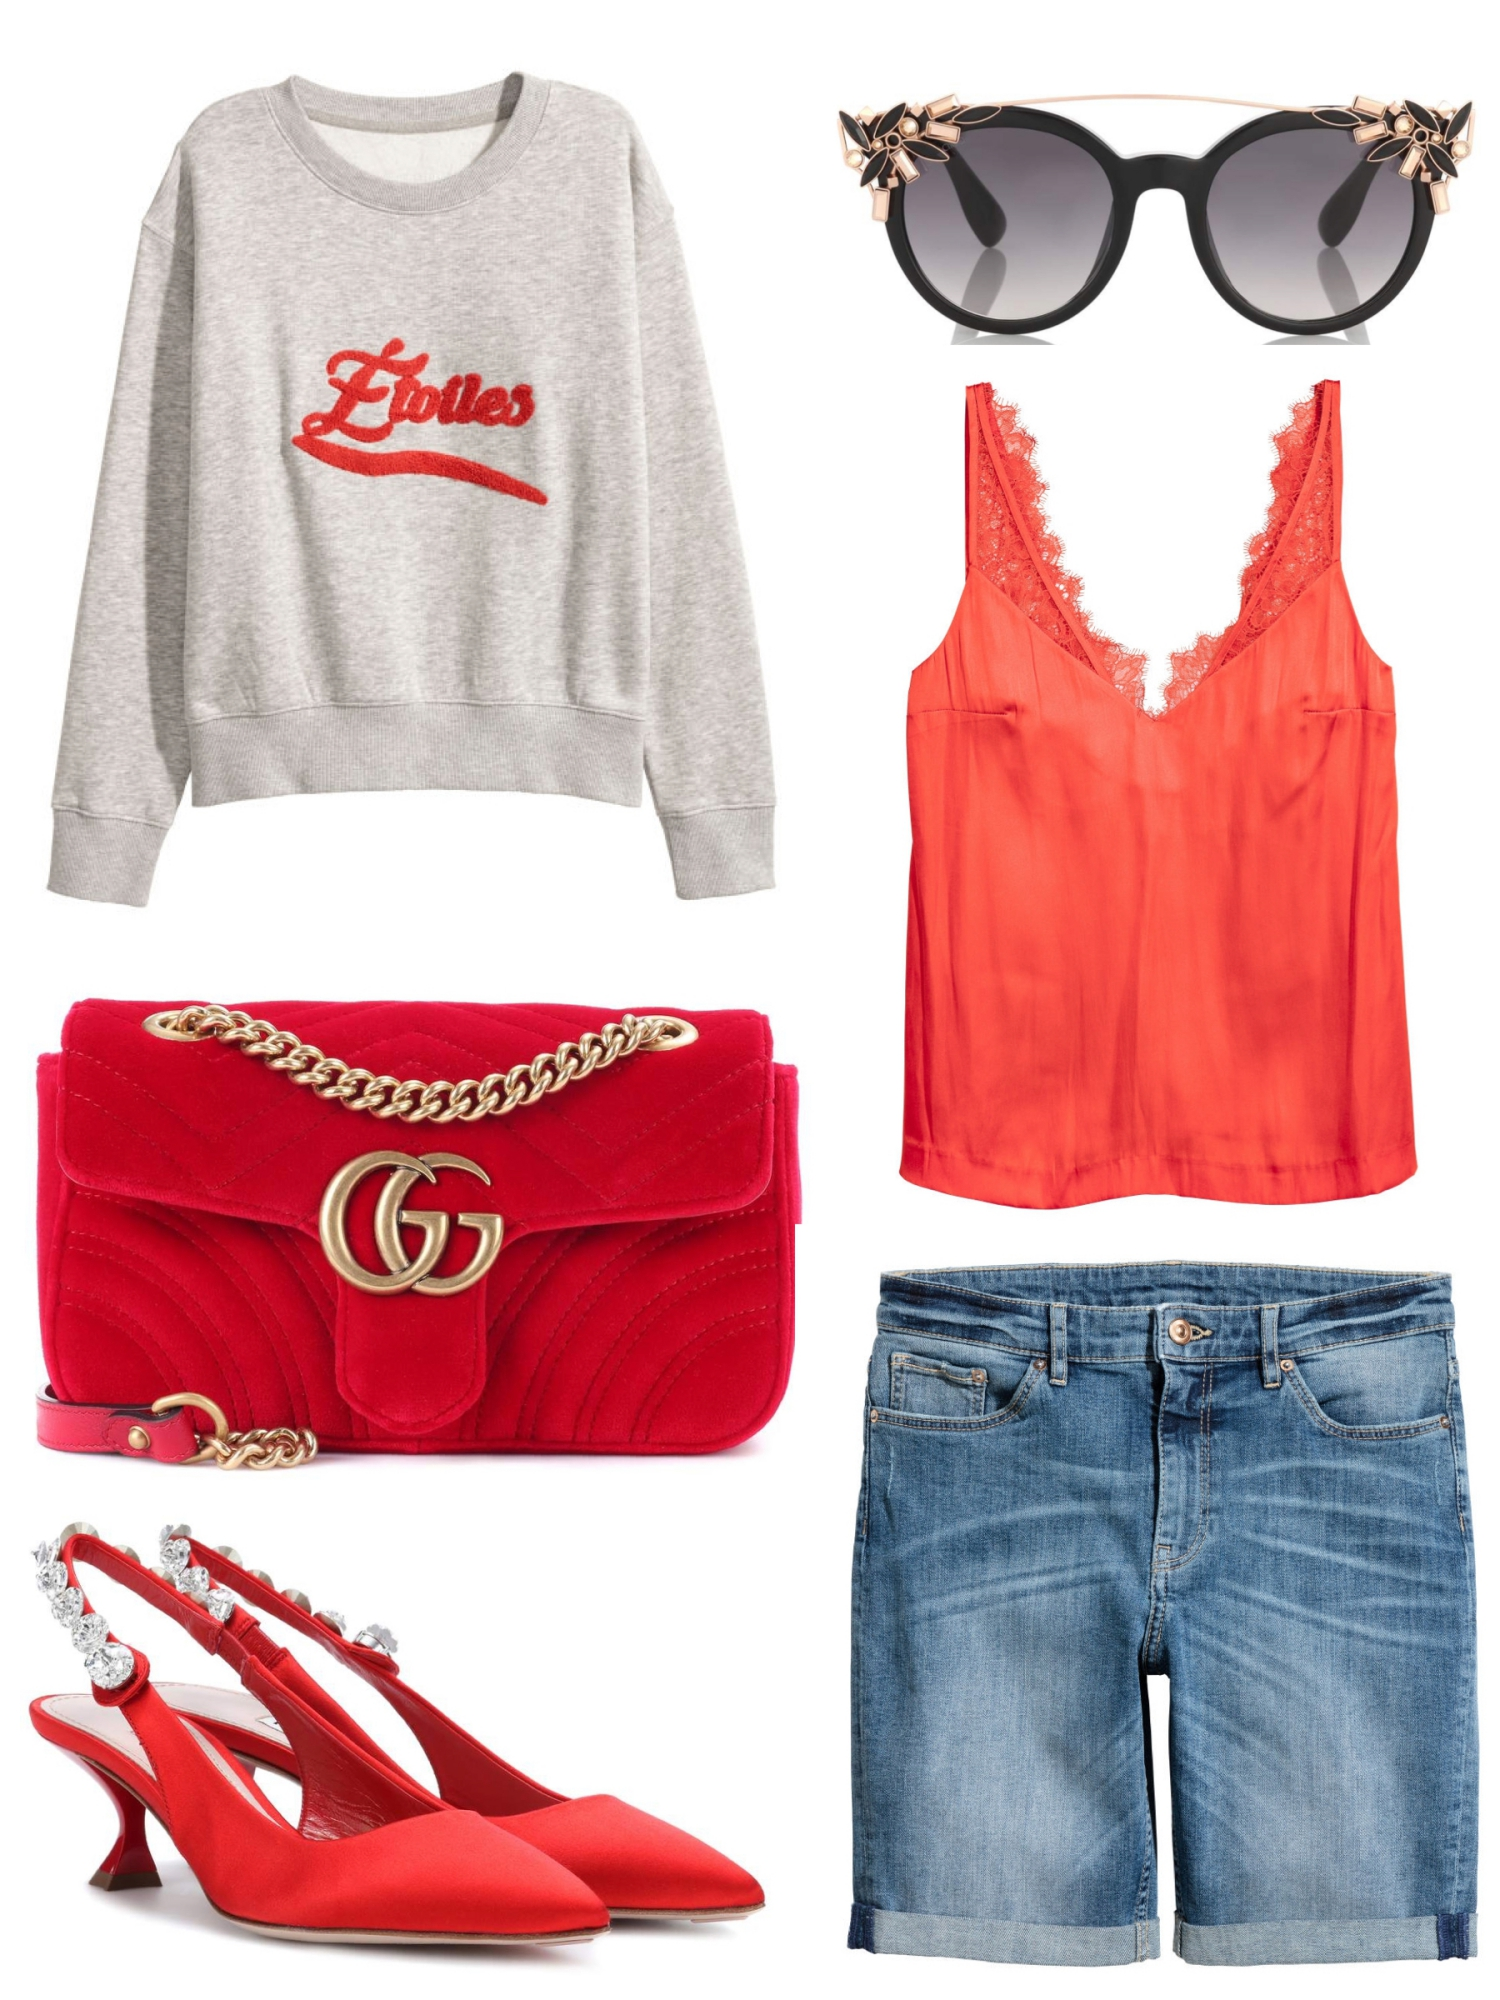 Outfit Inspiration: Color Combo Of Blue & Red